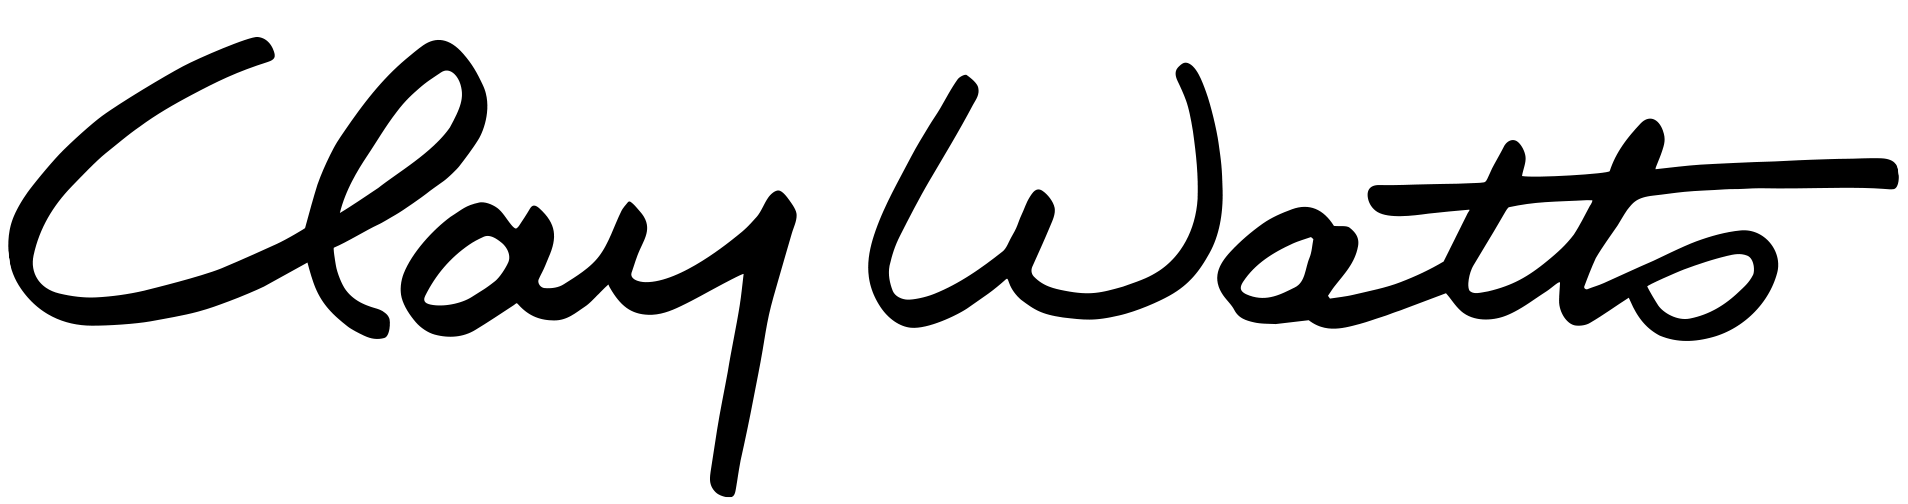 ClayWatts_Signature_Simple.png